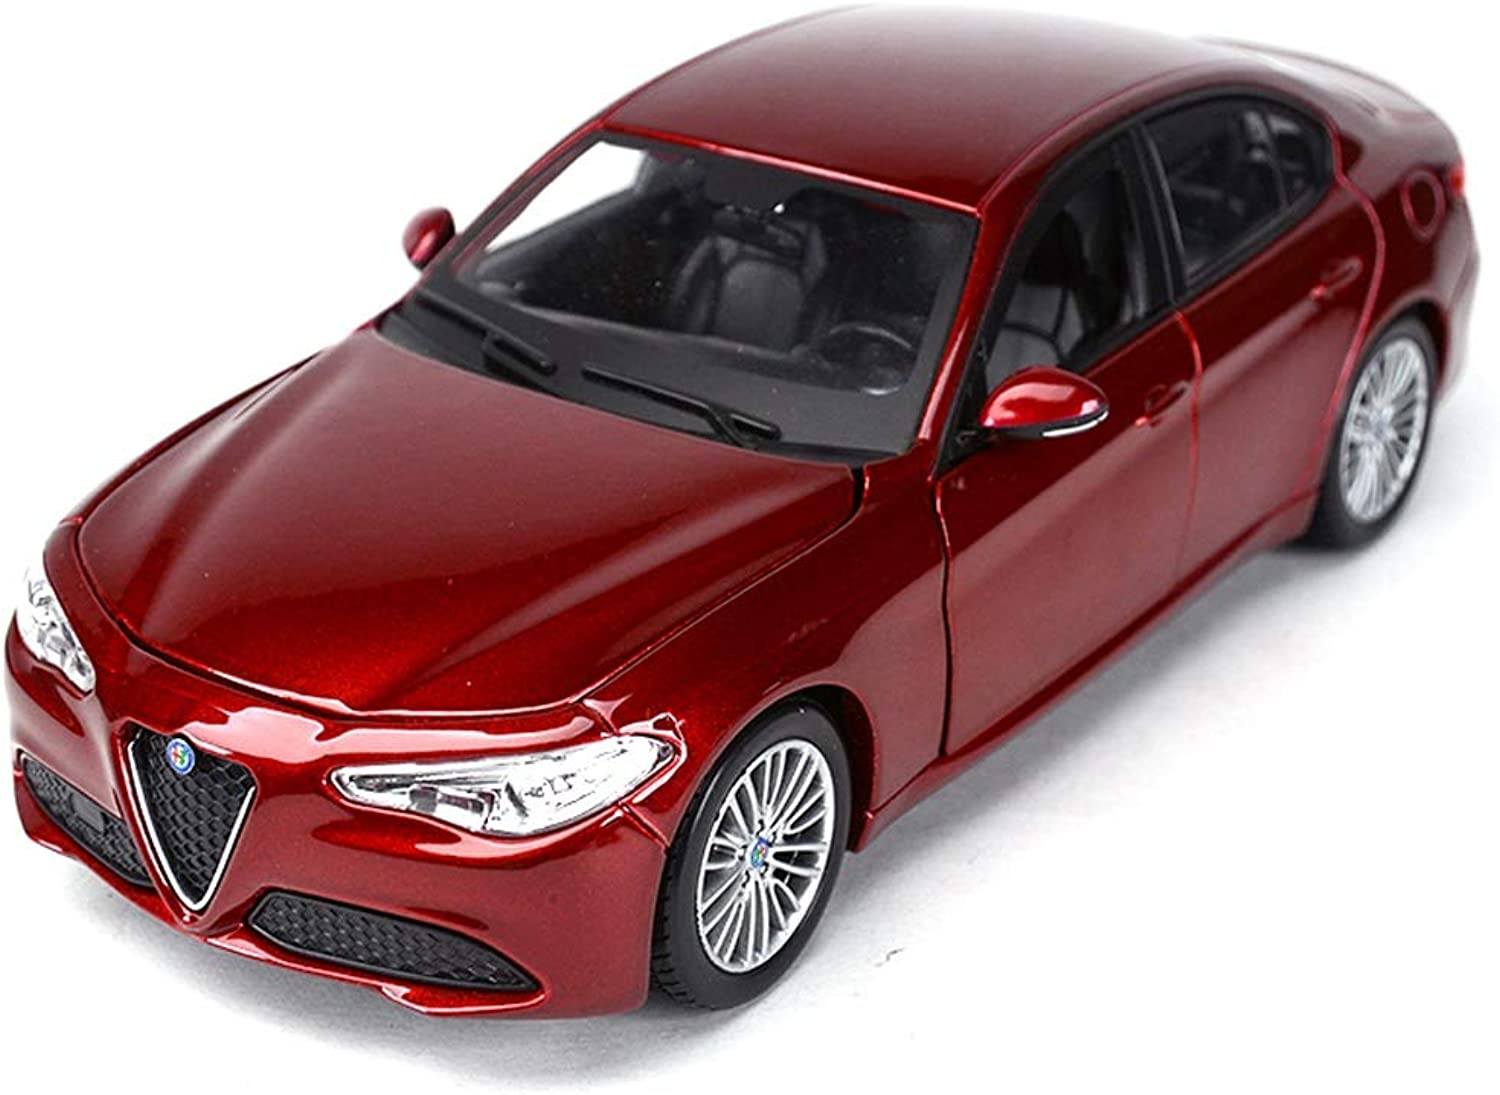 RUNWEI Car Model 1 24 Diecast Alloy Car Toy Jewelry Alfa Romeo Model Simulation Gift Decoration (color   Wine red)